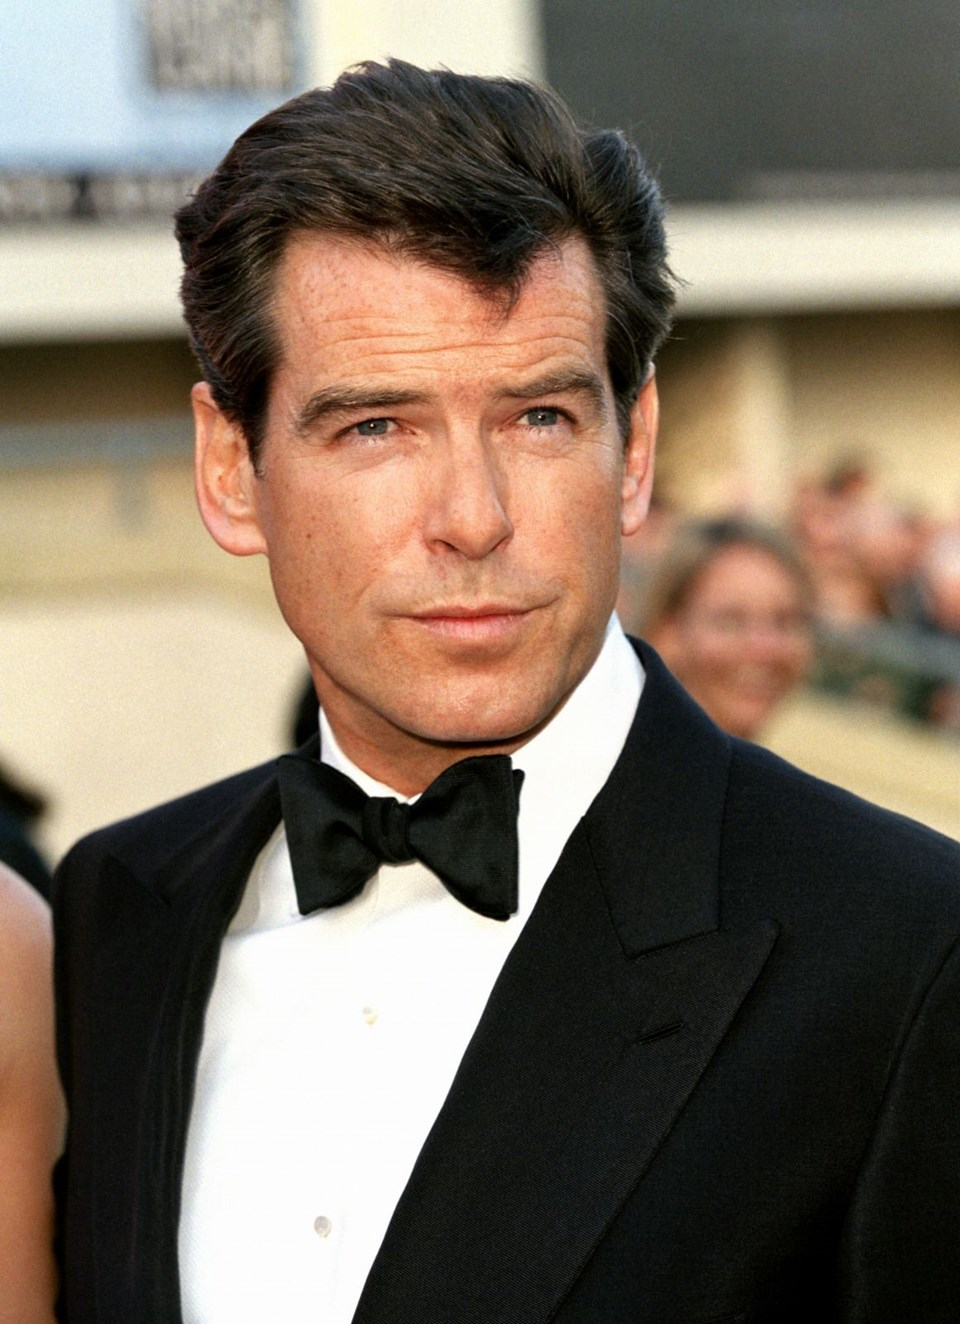 2001: PIERCE BROSNAN